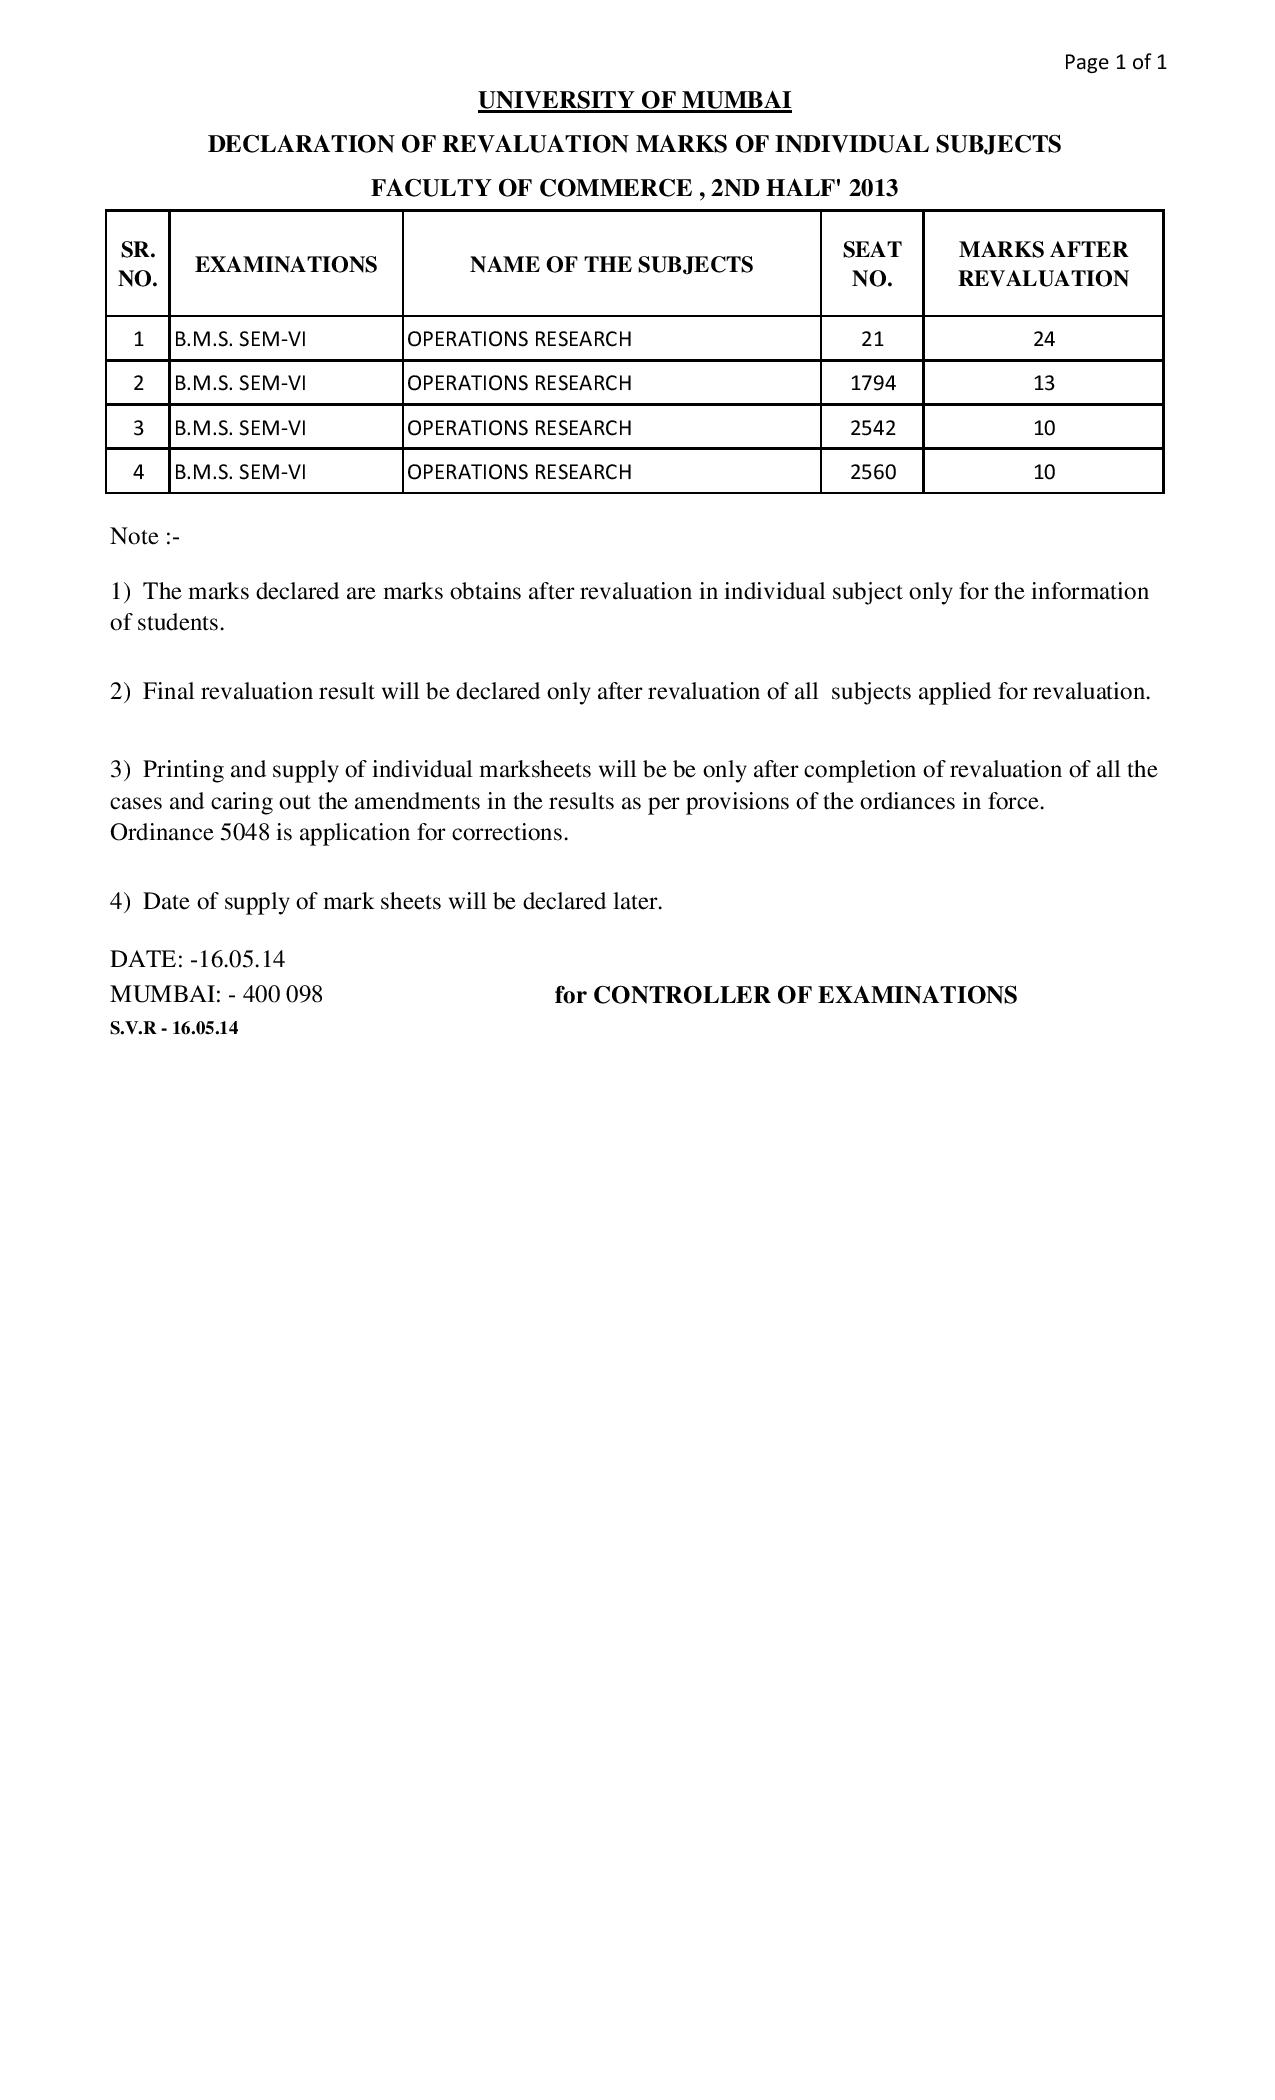 TYBMS Sem 6 ATKT Exam 2013 Revaluation Results 5th List Declared On 16 May 2014